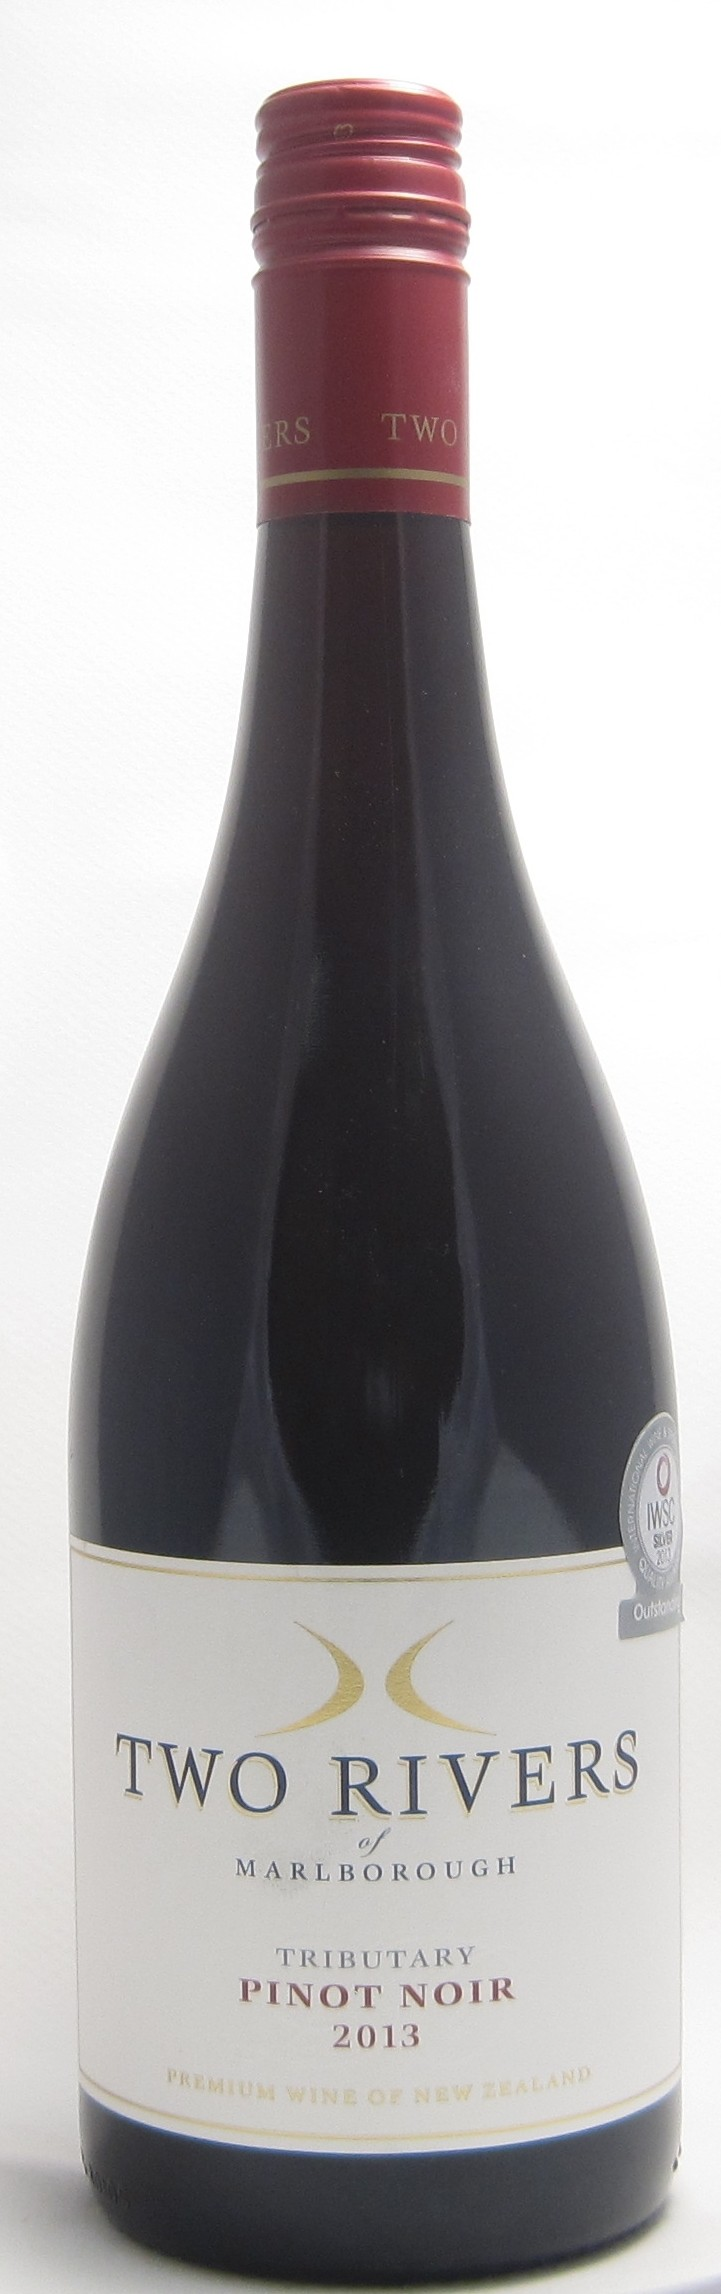 Two Rivers 'Tributary' Pinot Noir